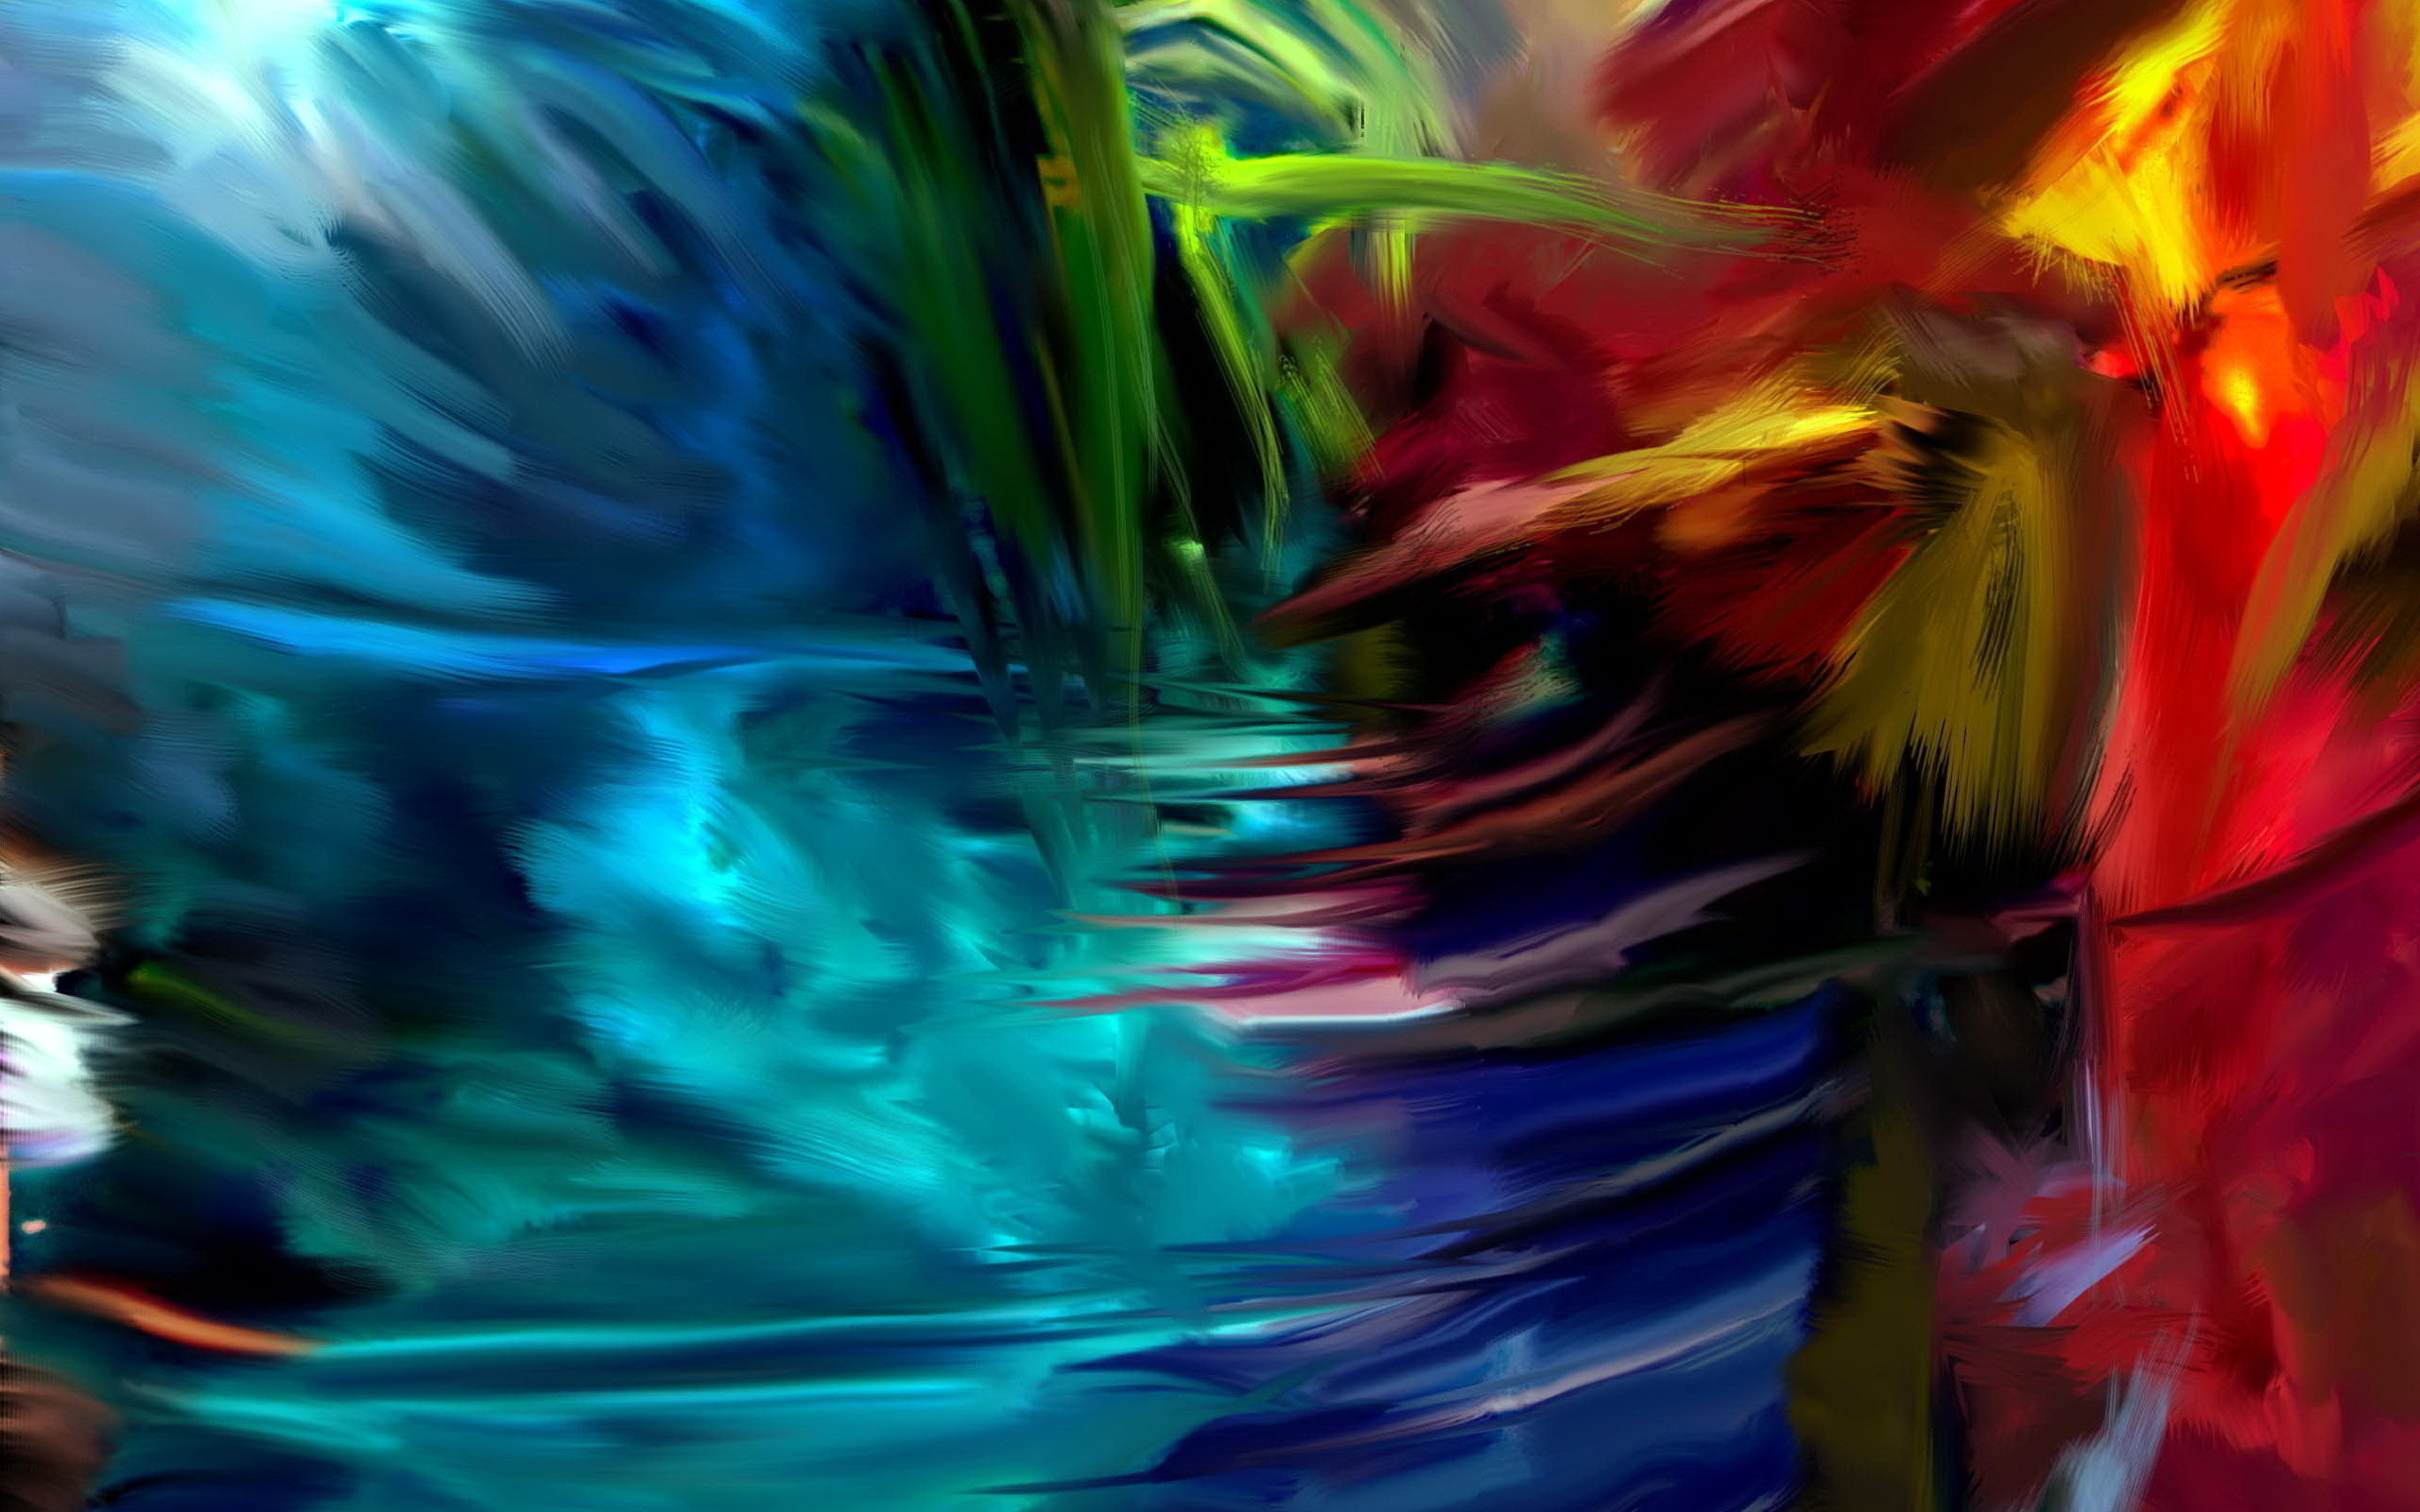 Res: 2560x1600, Artistic Abstract Wallpaper Free For Widescreen Wallpaper